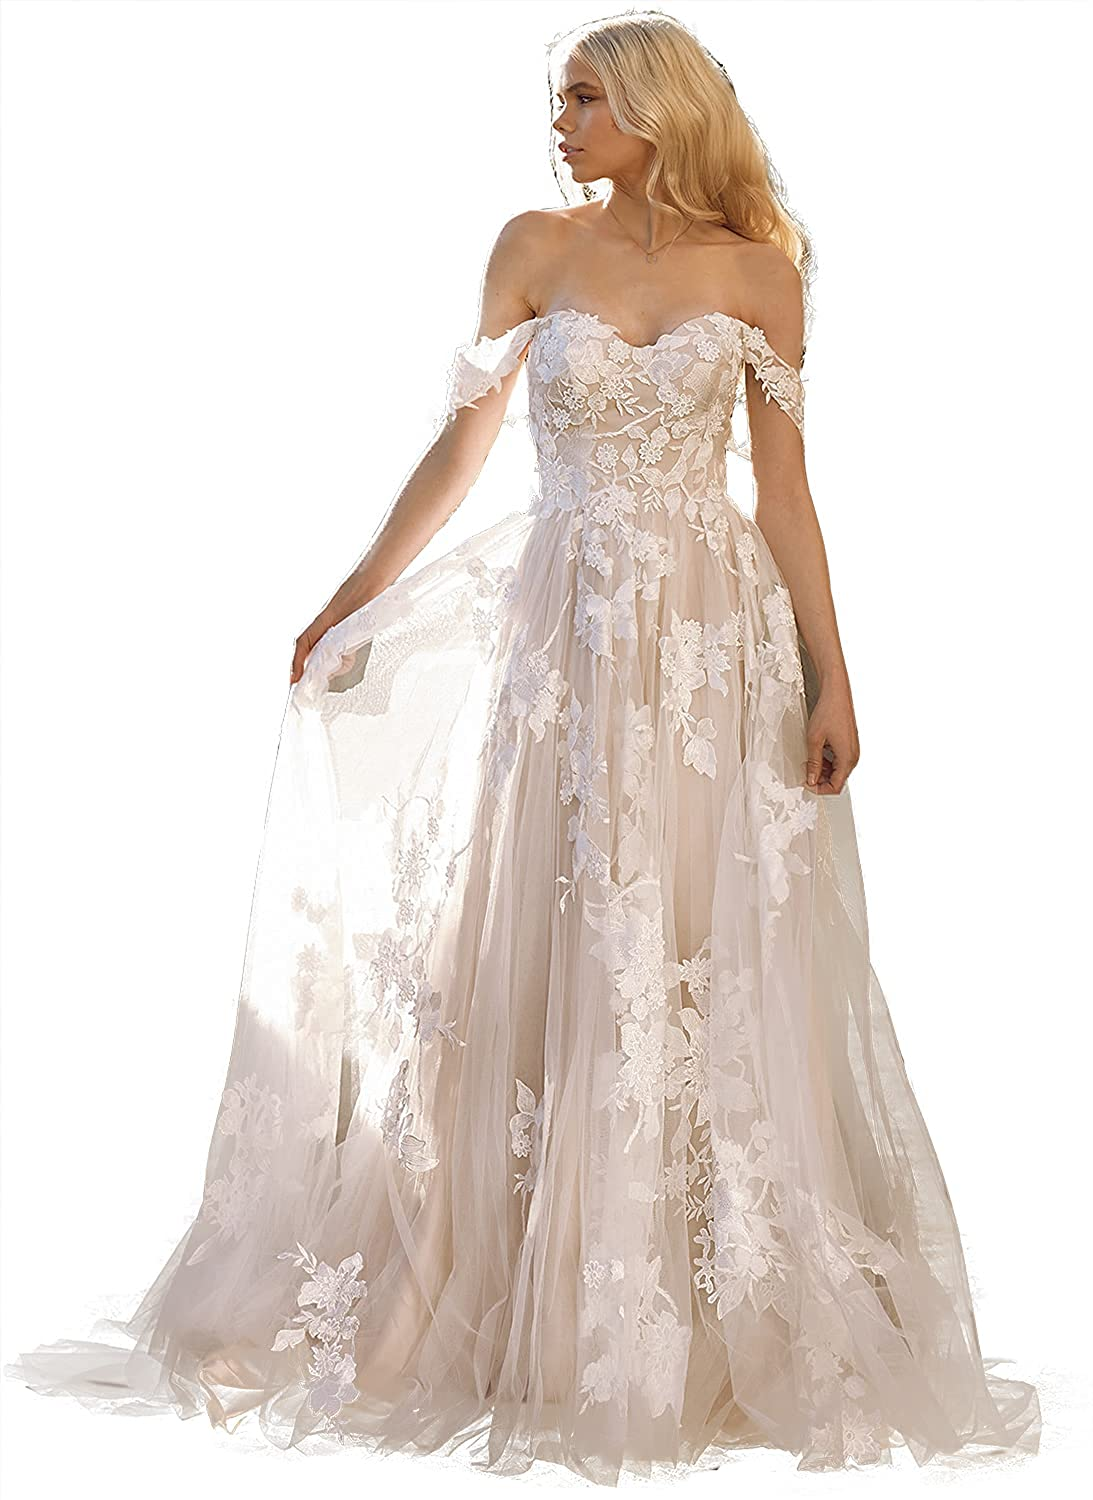 Lover Kiss Women's Floral Lace Wedding Dresses for Bride 2021 Long Off Shoulder Beaded Mermaid Bridal Gowns